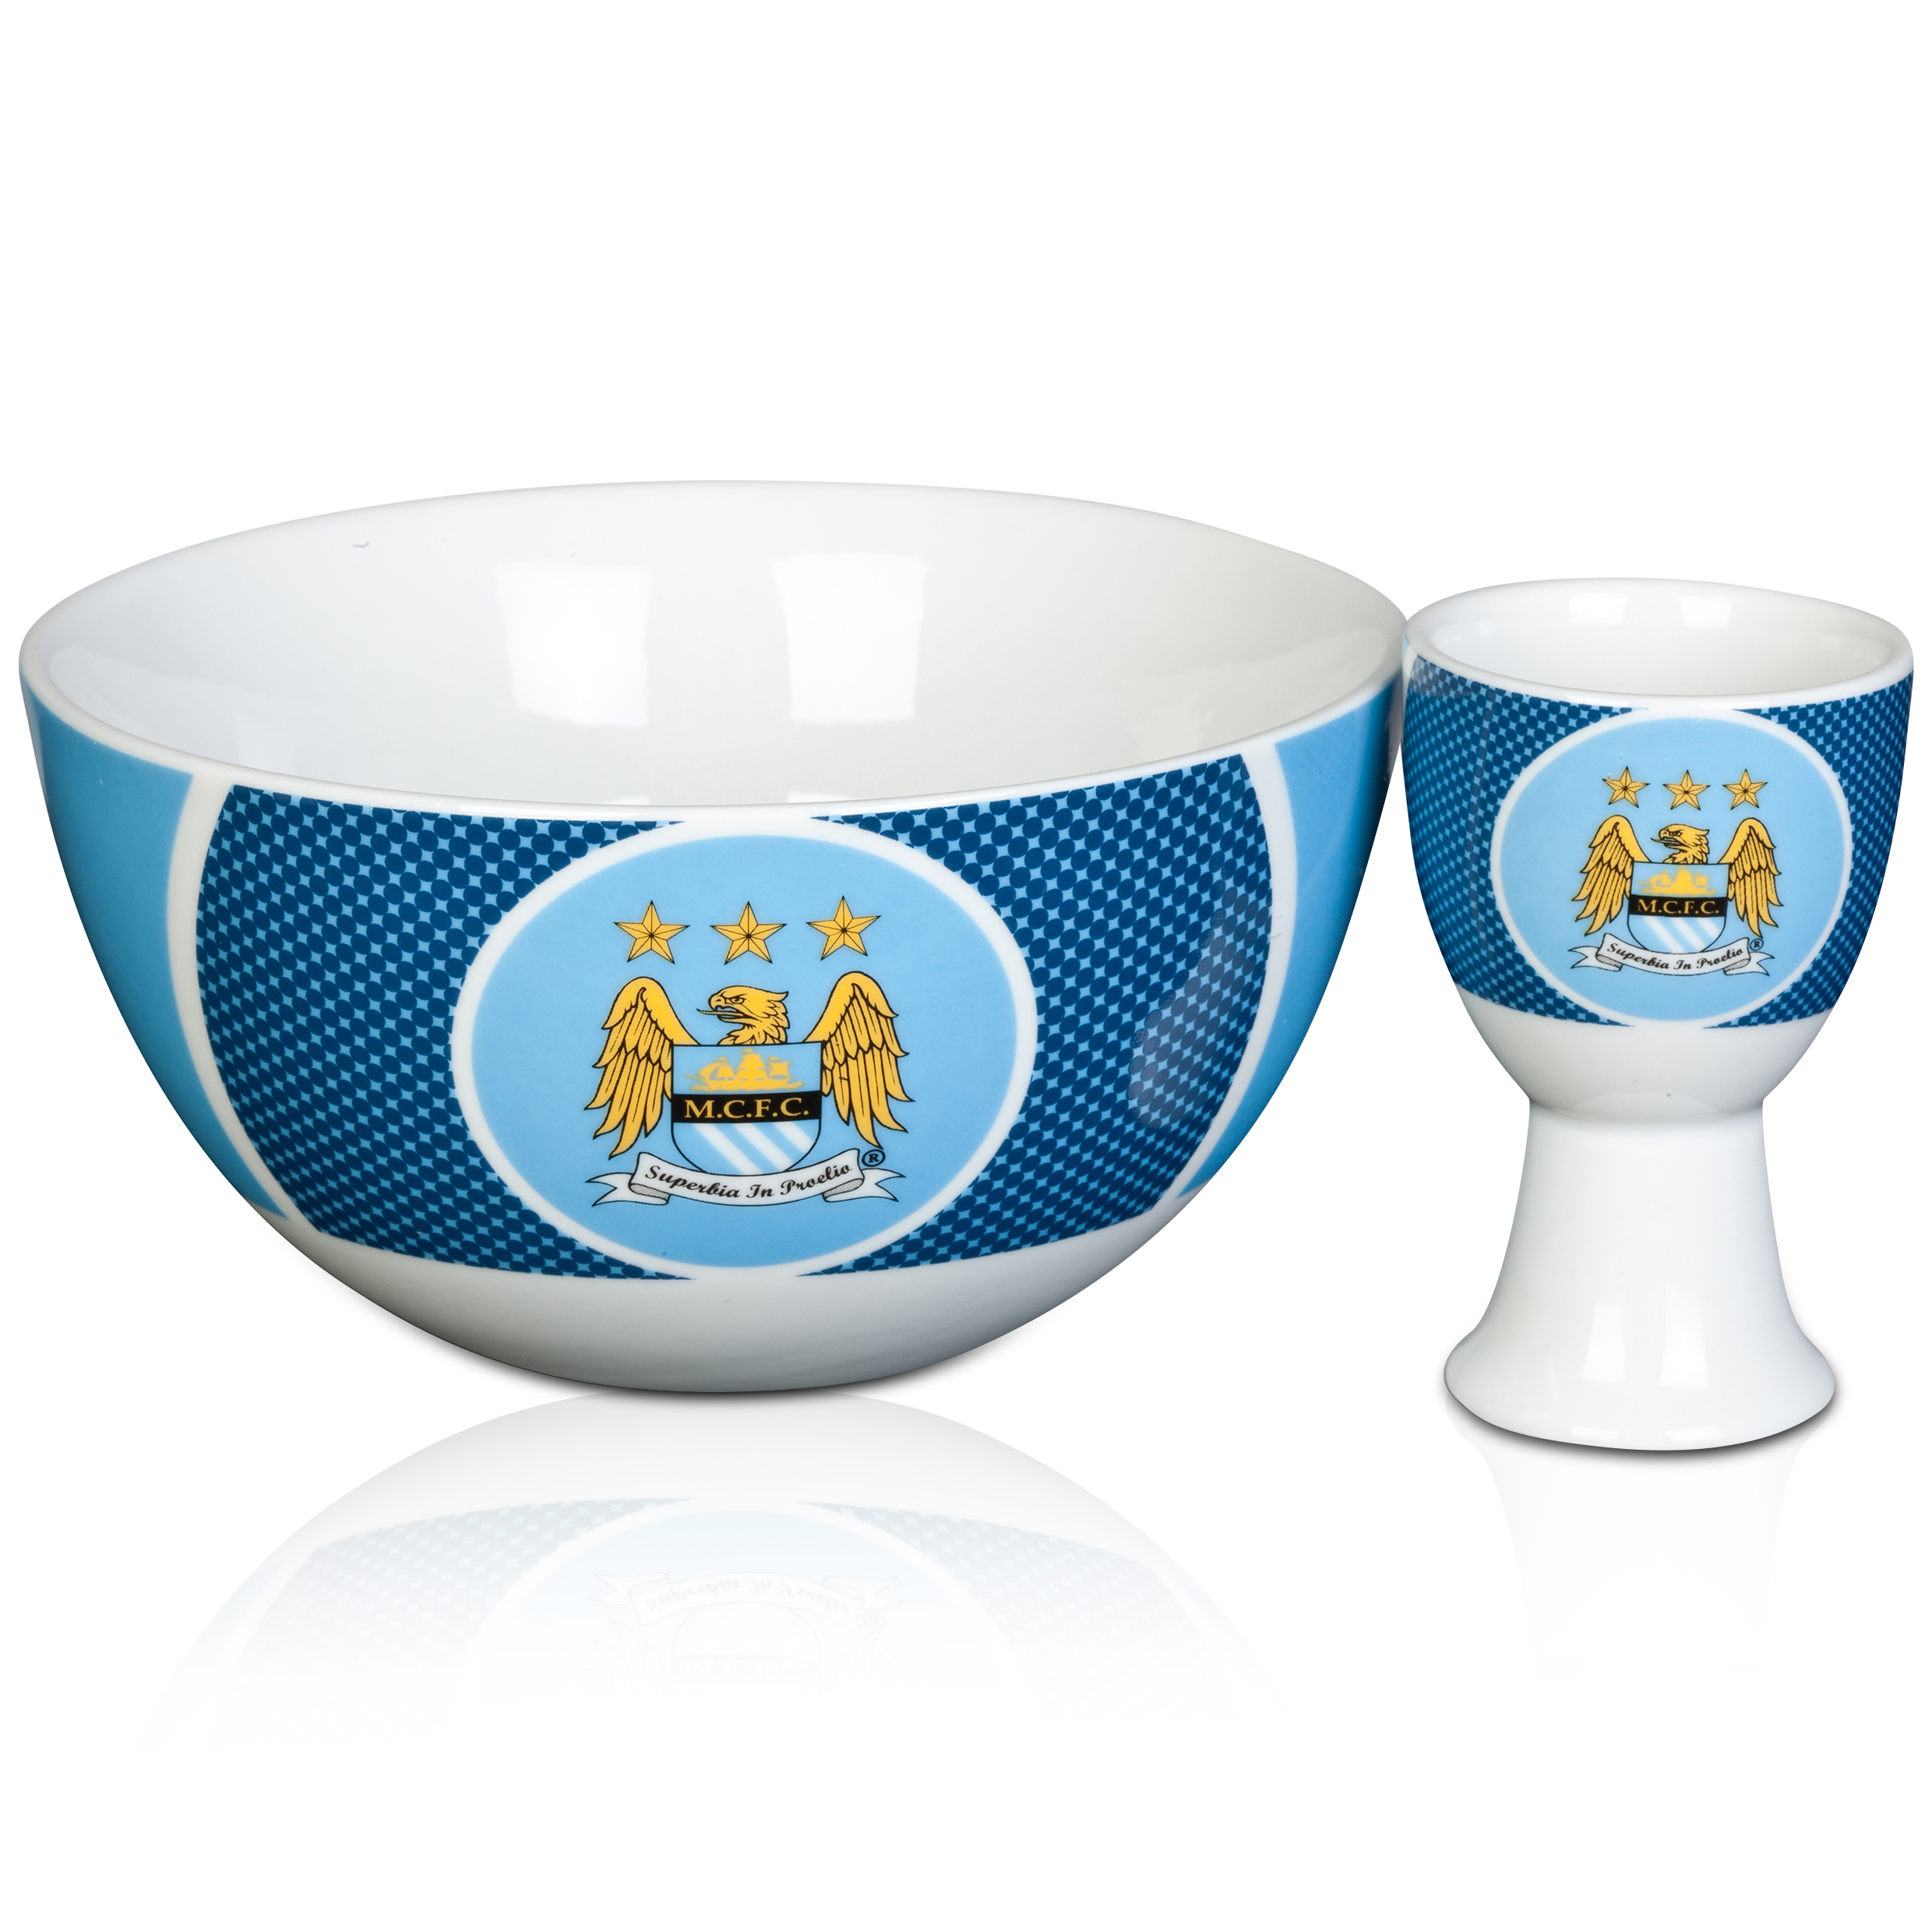 Manchester City Bullseye cereal bowl and egg cup set